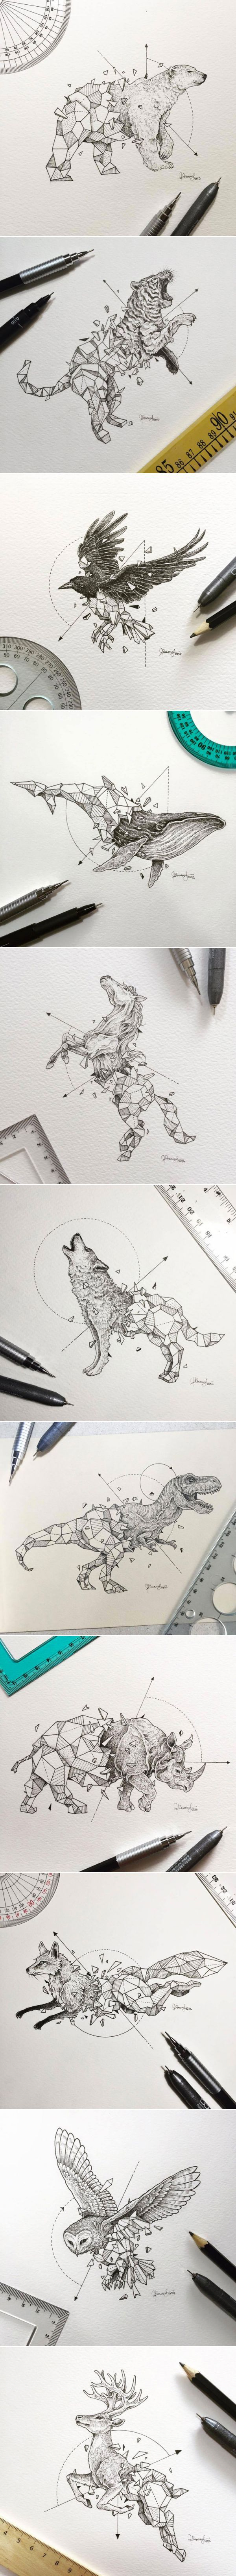 Tatto Ideas 2017 - Geometric Beasts by Kerby Rosanes...